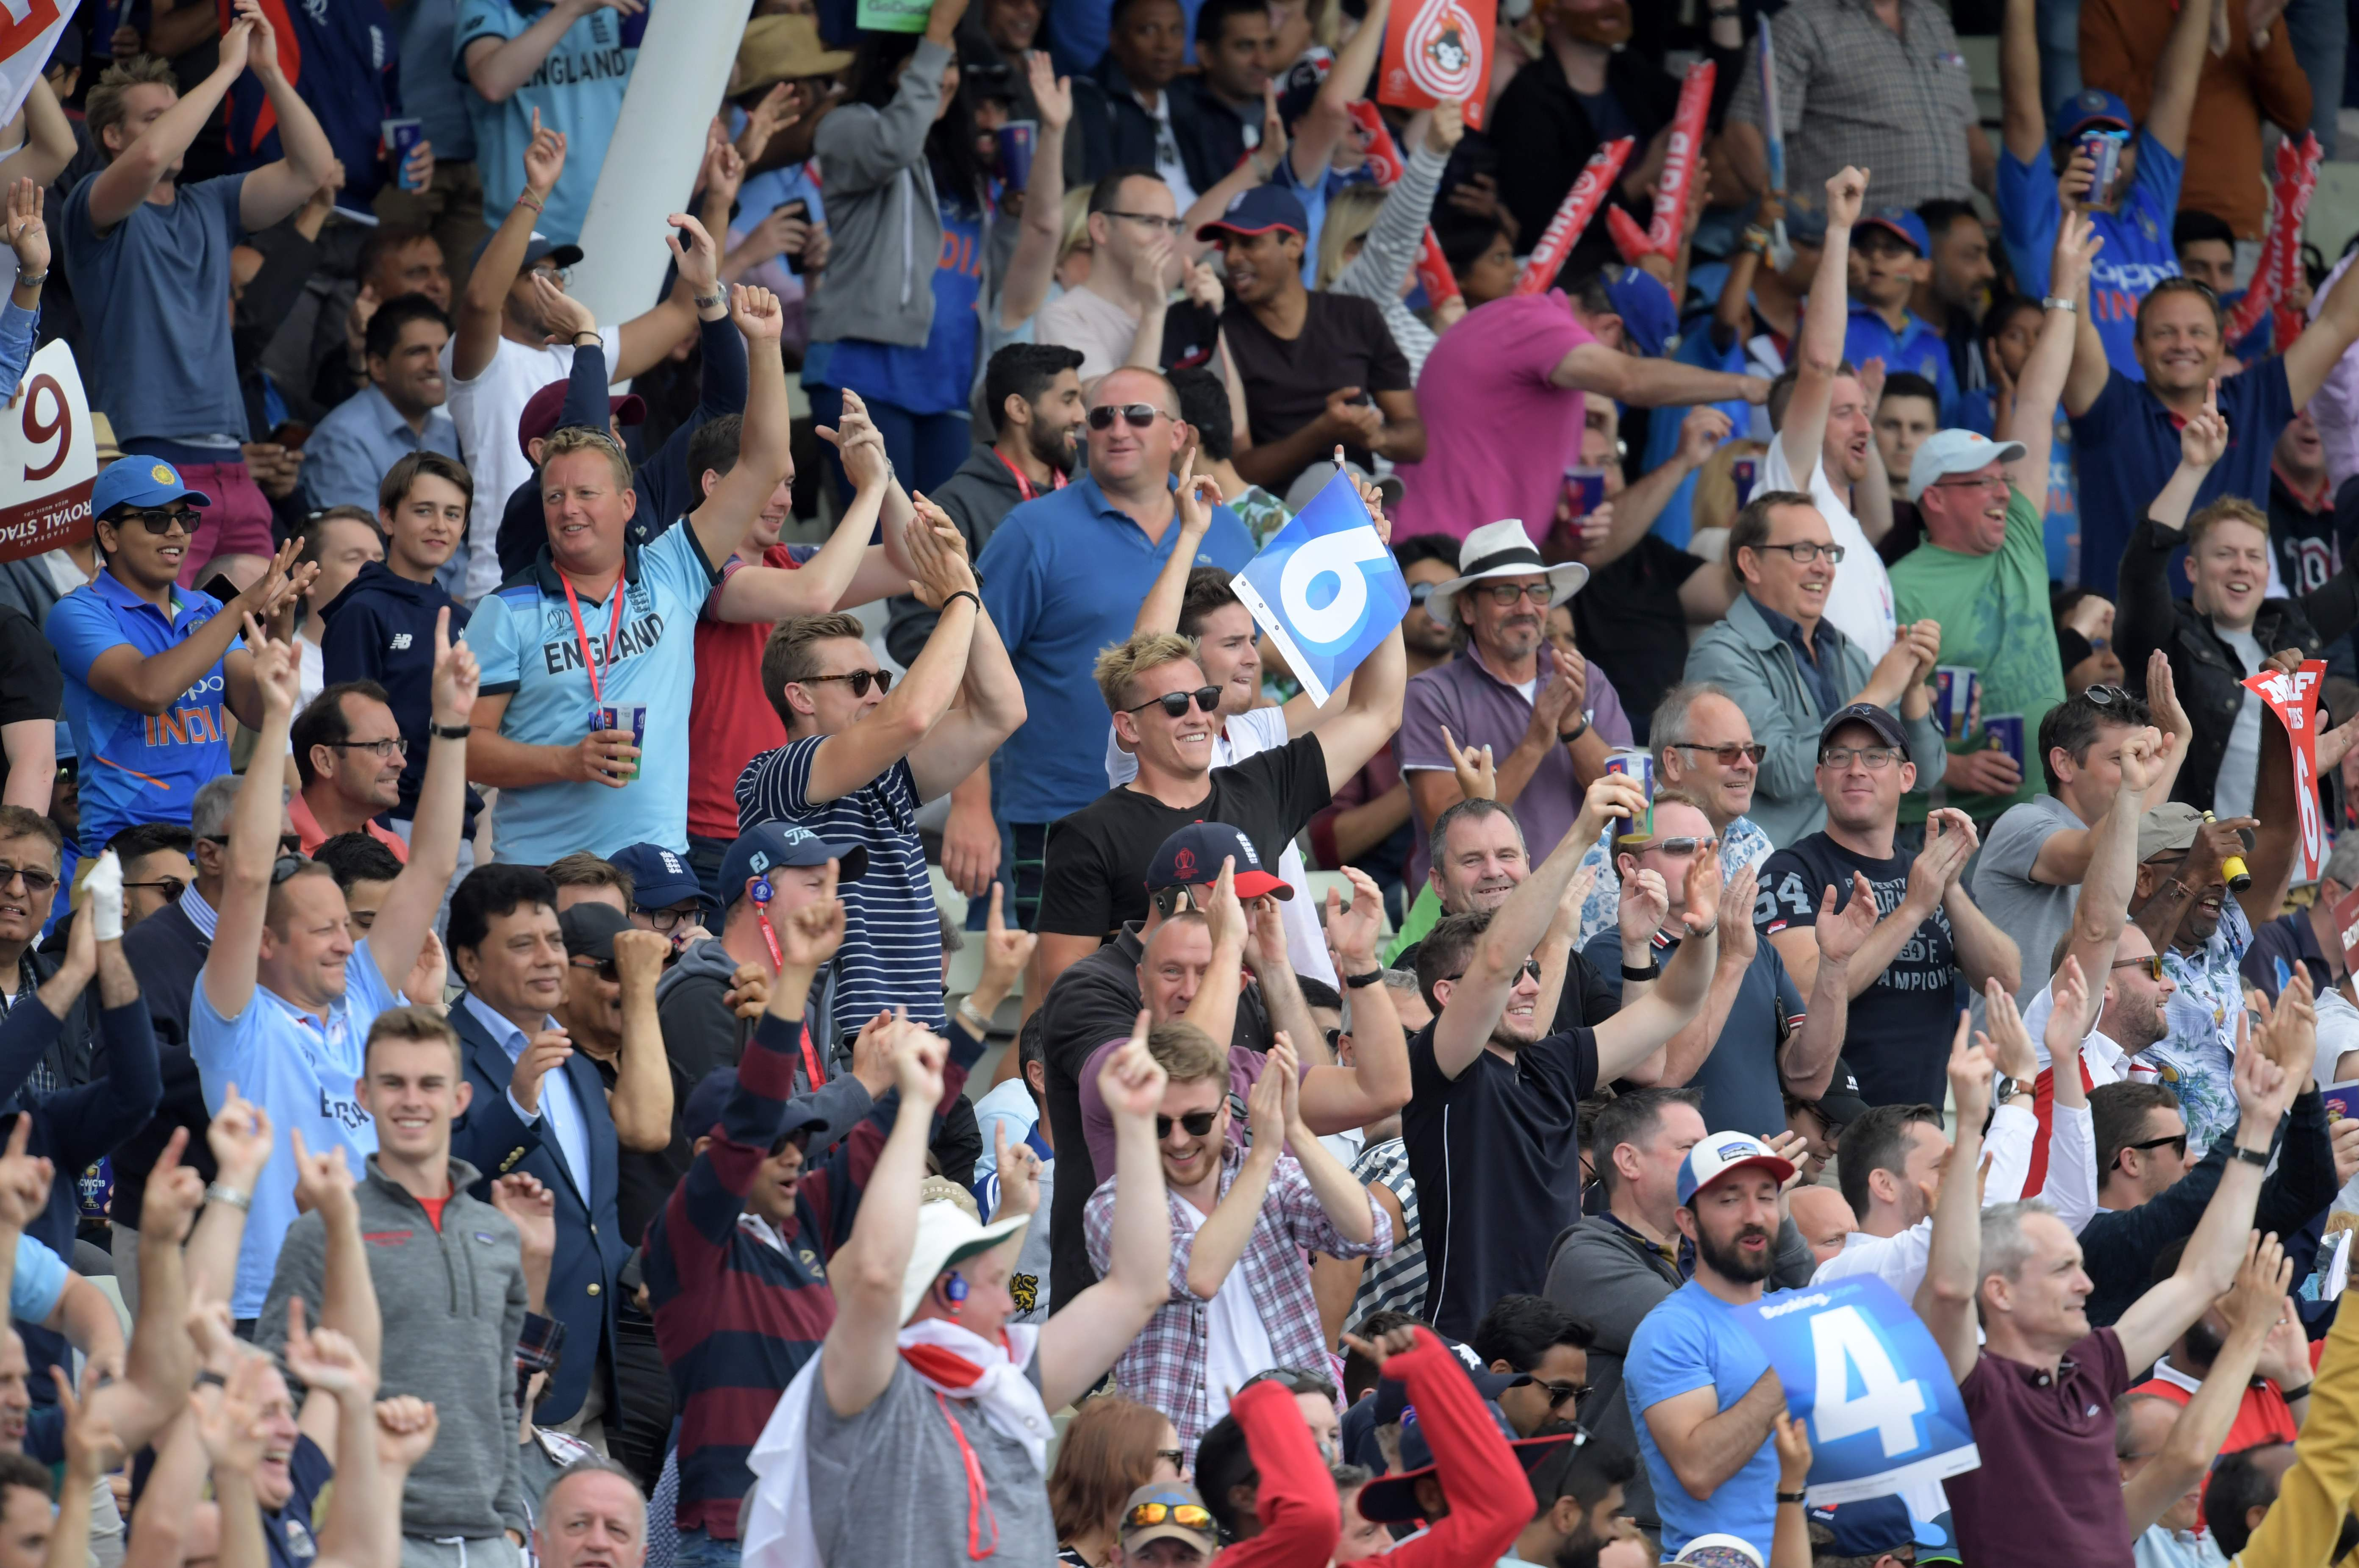 Spectators cheer during the 2019 Cricket World Cup second semi-final. Photo: AFP